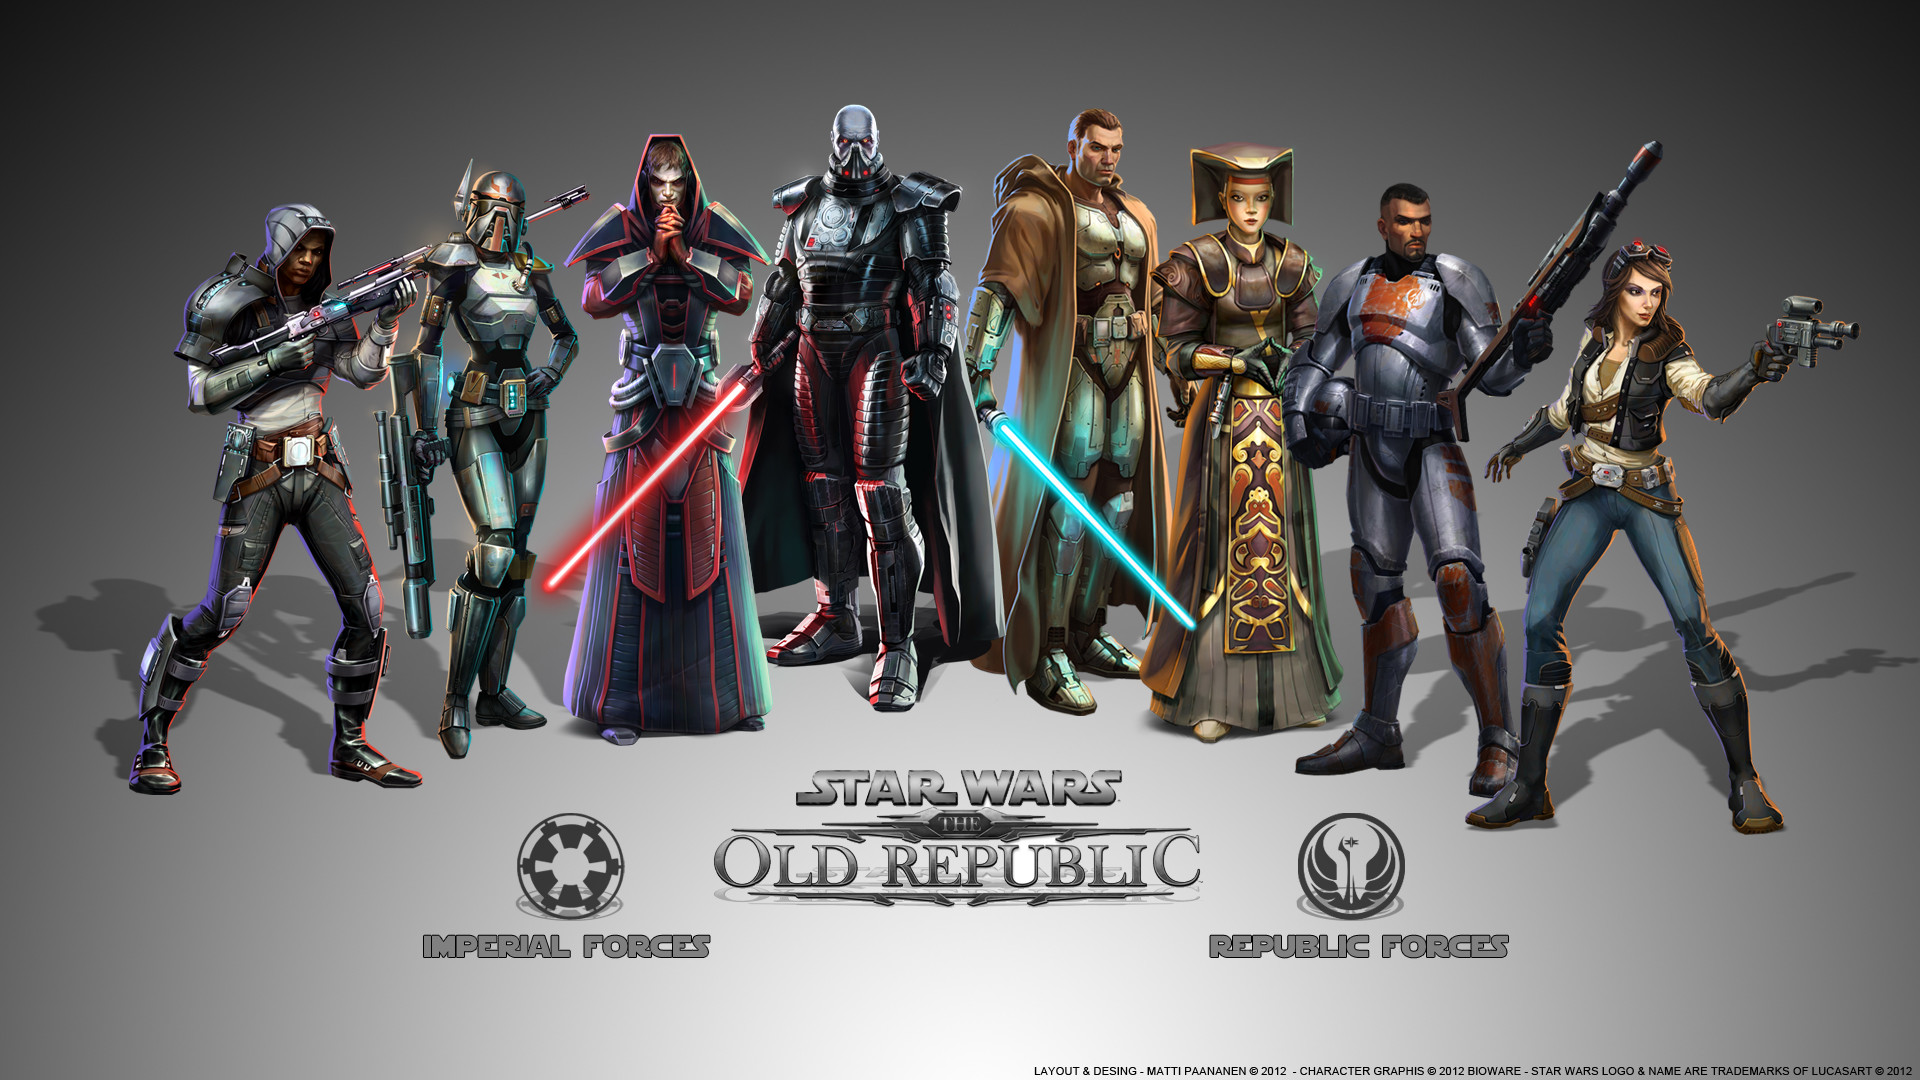 1920x1080 StarWars: the old republic images Classes of SWTOR HD wallpaper and  background photos